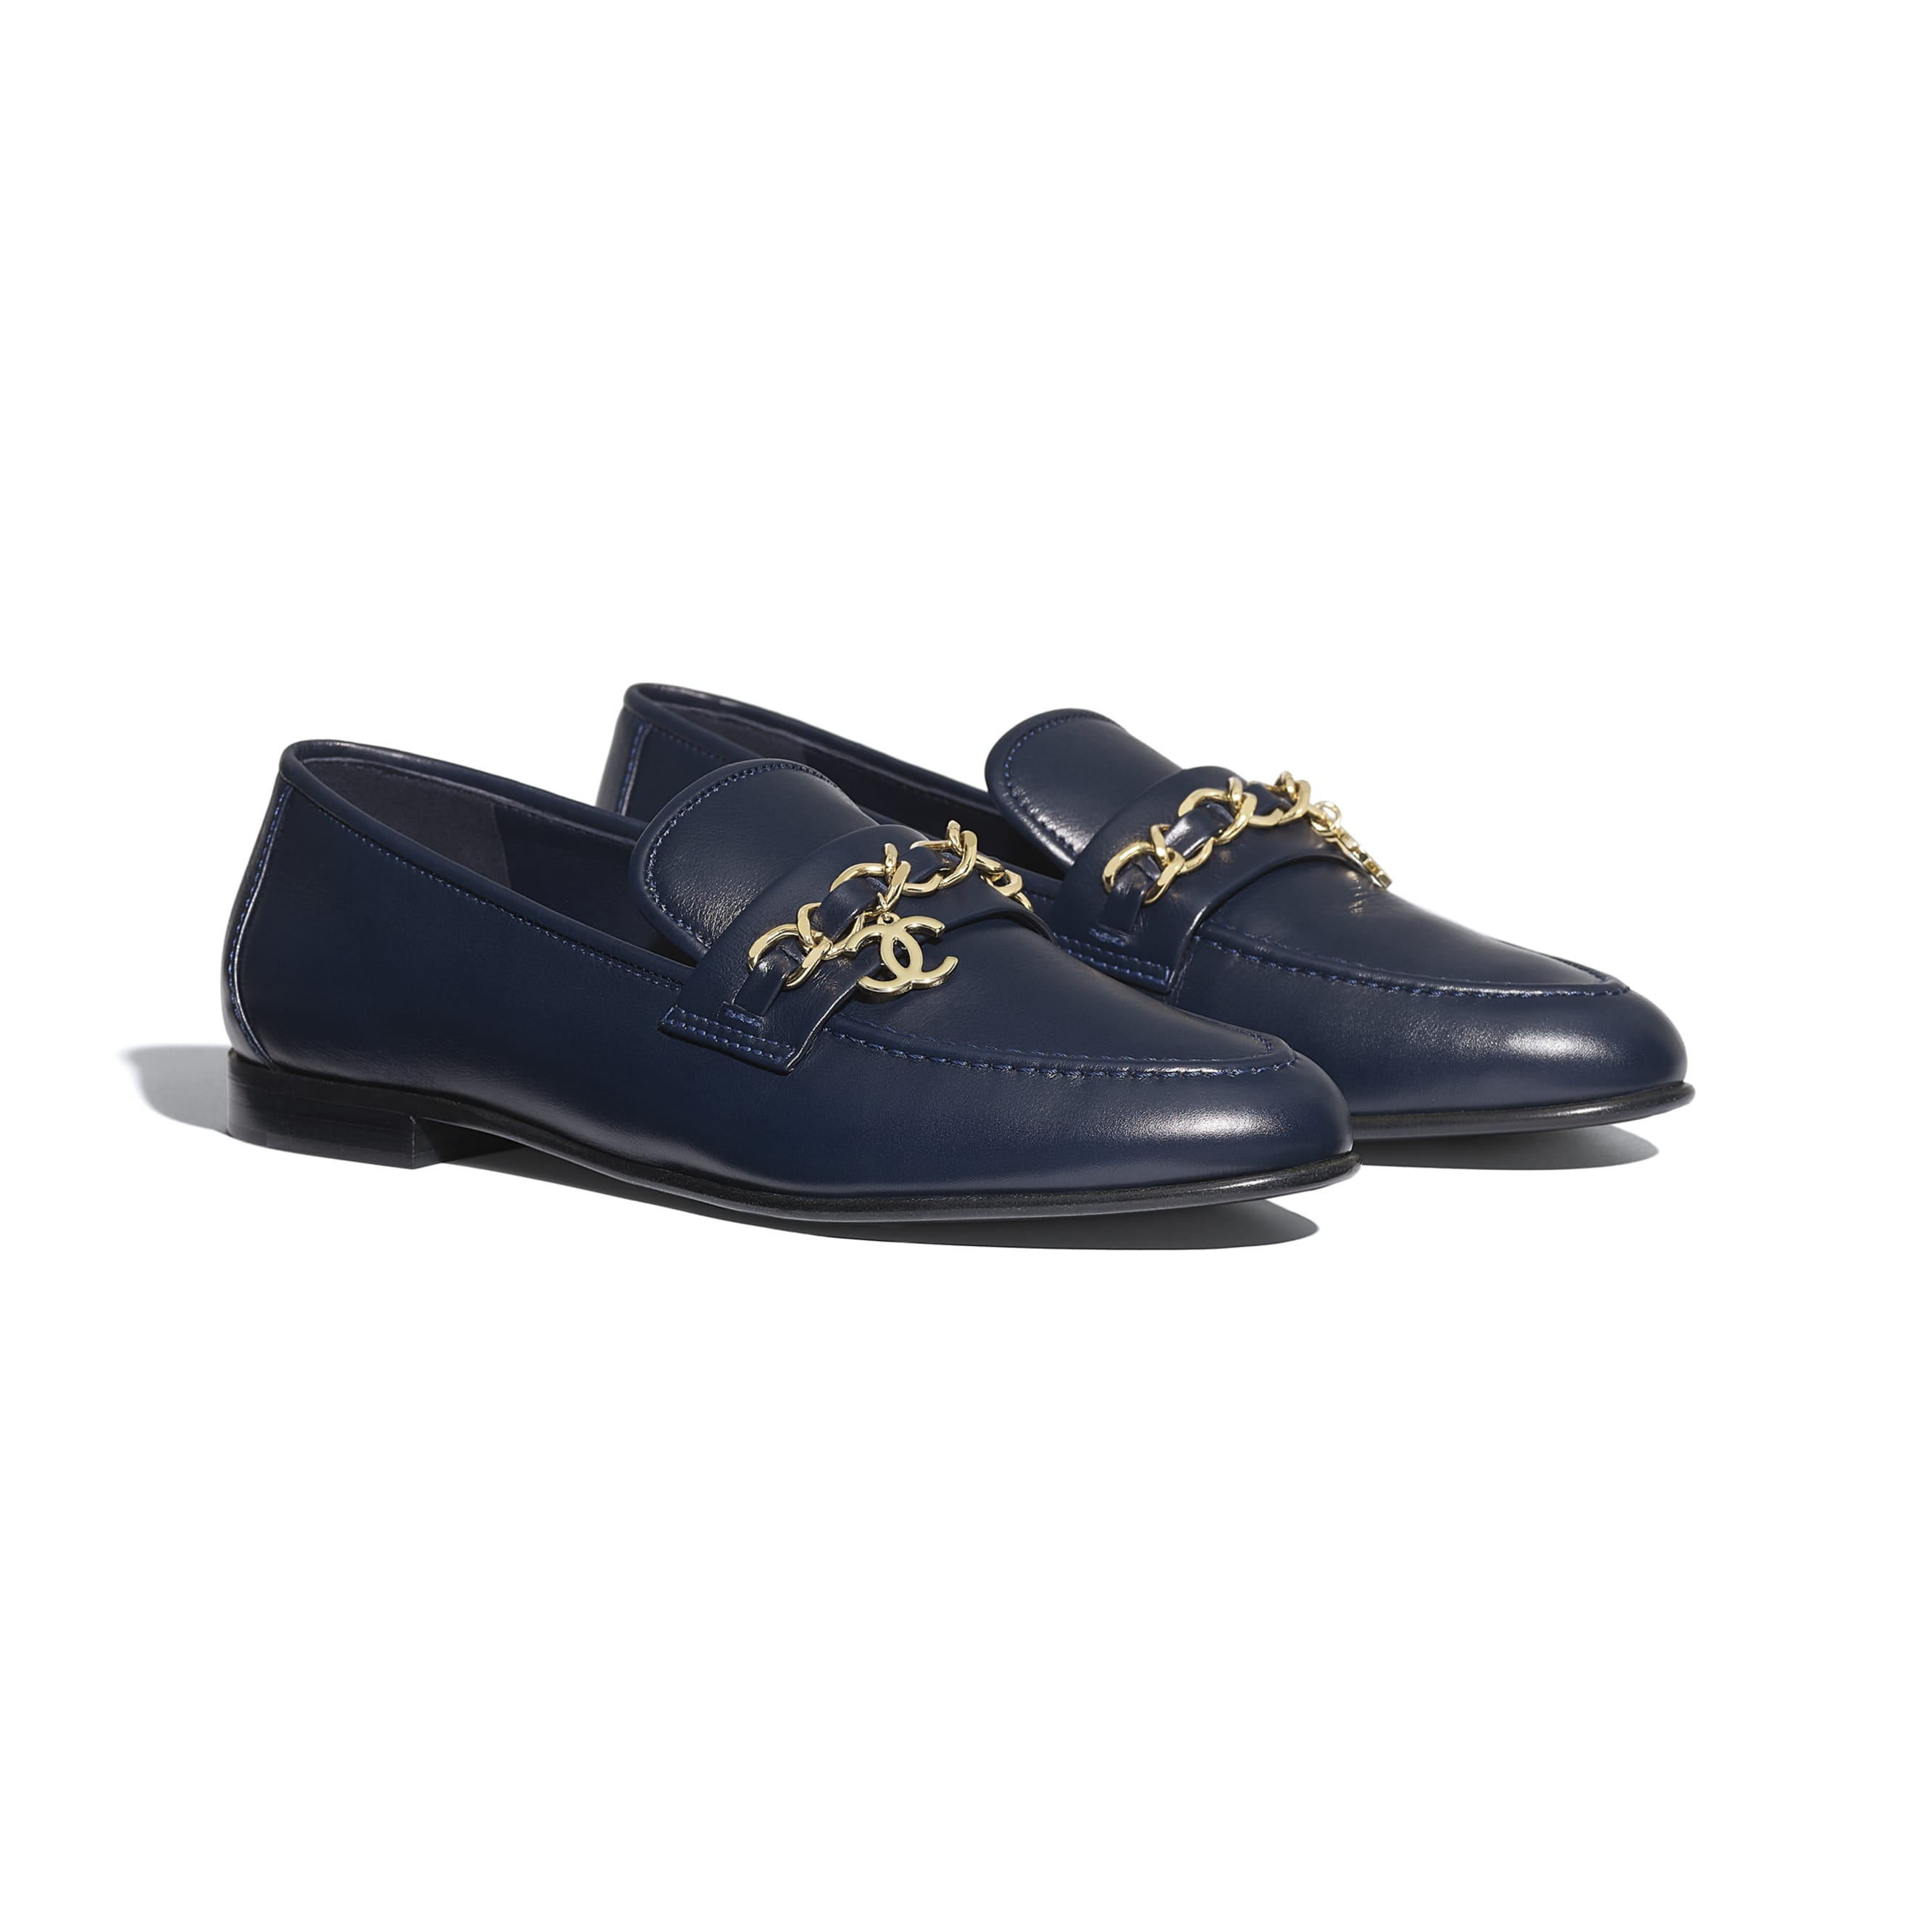 Loafers - Navy Blue - Lambskin - CHANEL - Alternative view - see standard sized version